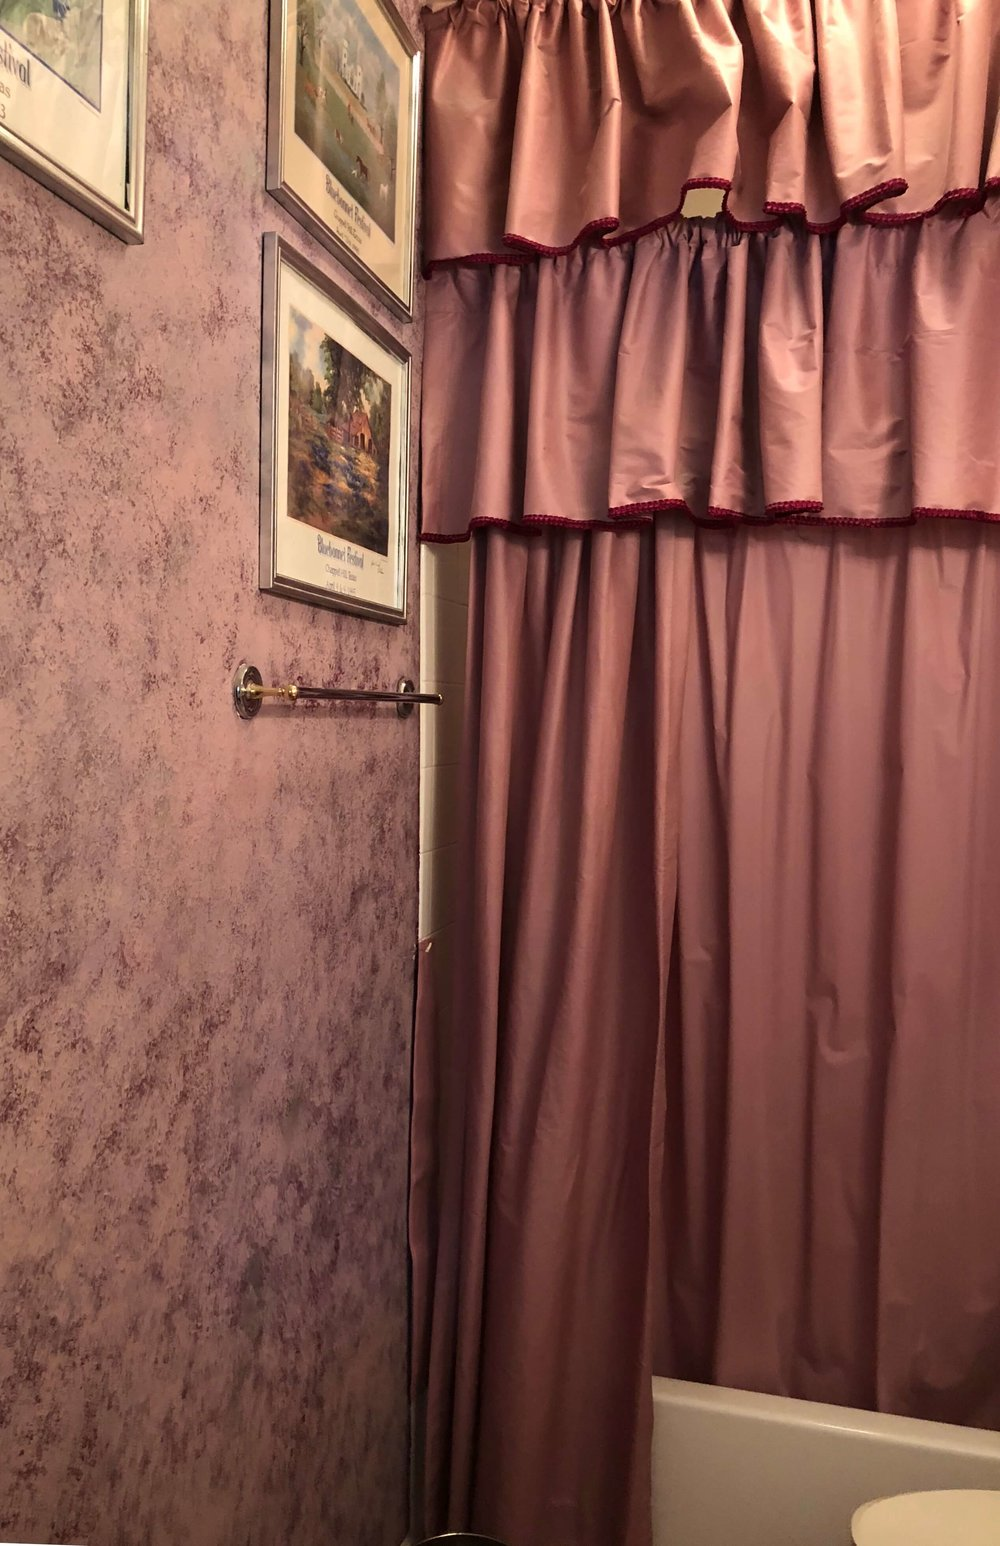 Before - The mauve shower curtain was removed in this house and the sponge painted mauve walls were painted over and neutralized for resale. #stagedtosell #homestaging #sellingahouse #stagingtosell #stagingideas